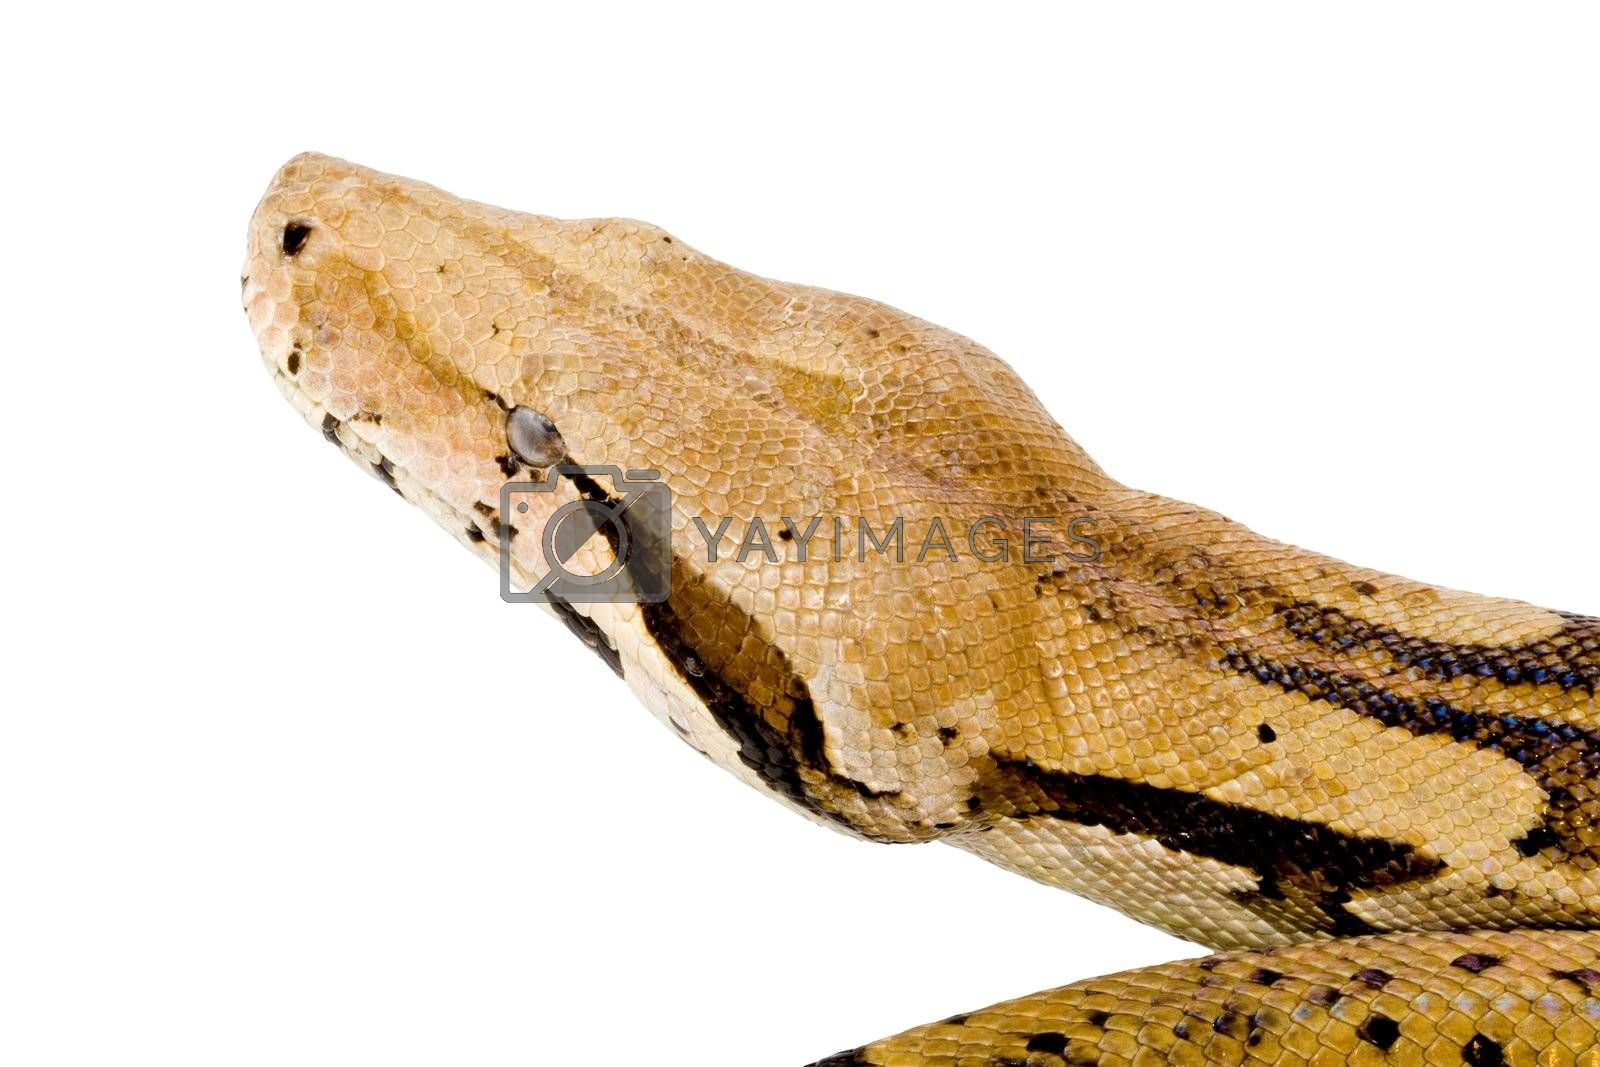 Head of a large adult Boa Constrictor  - detail